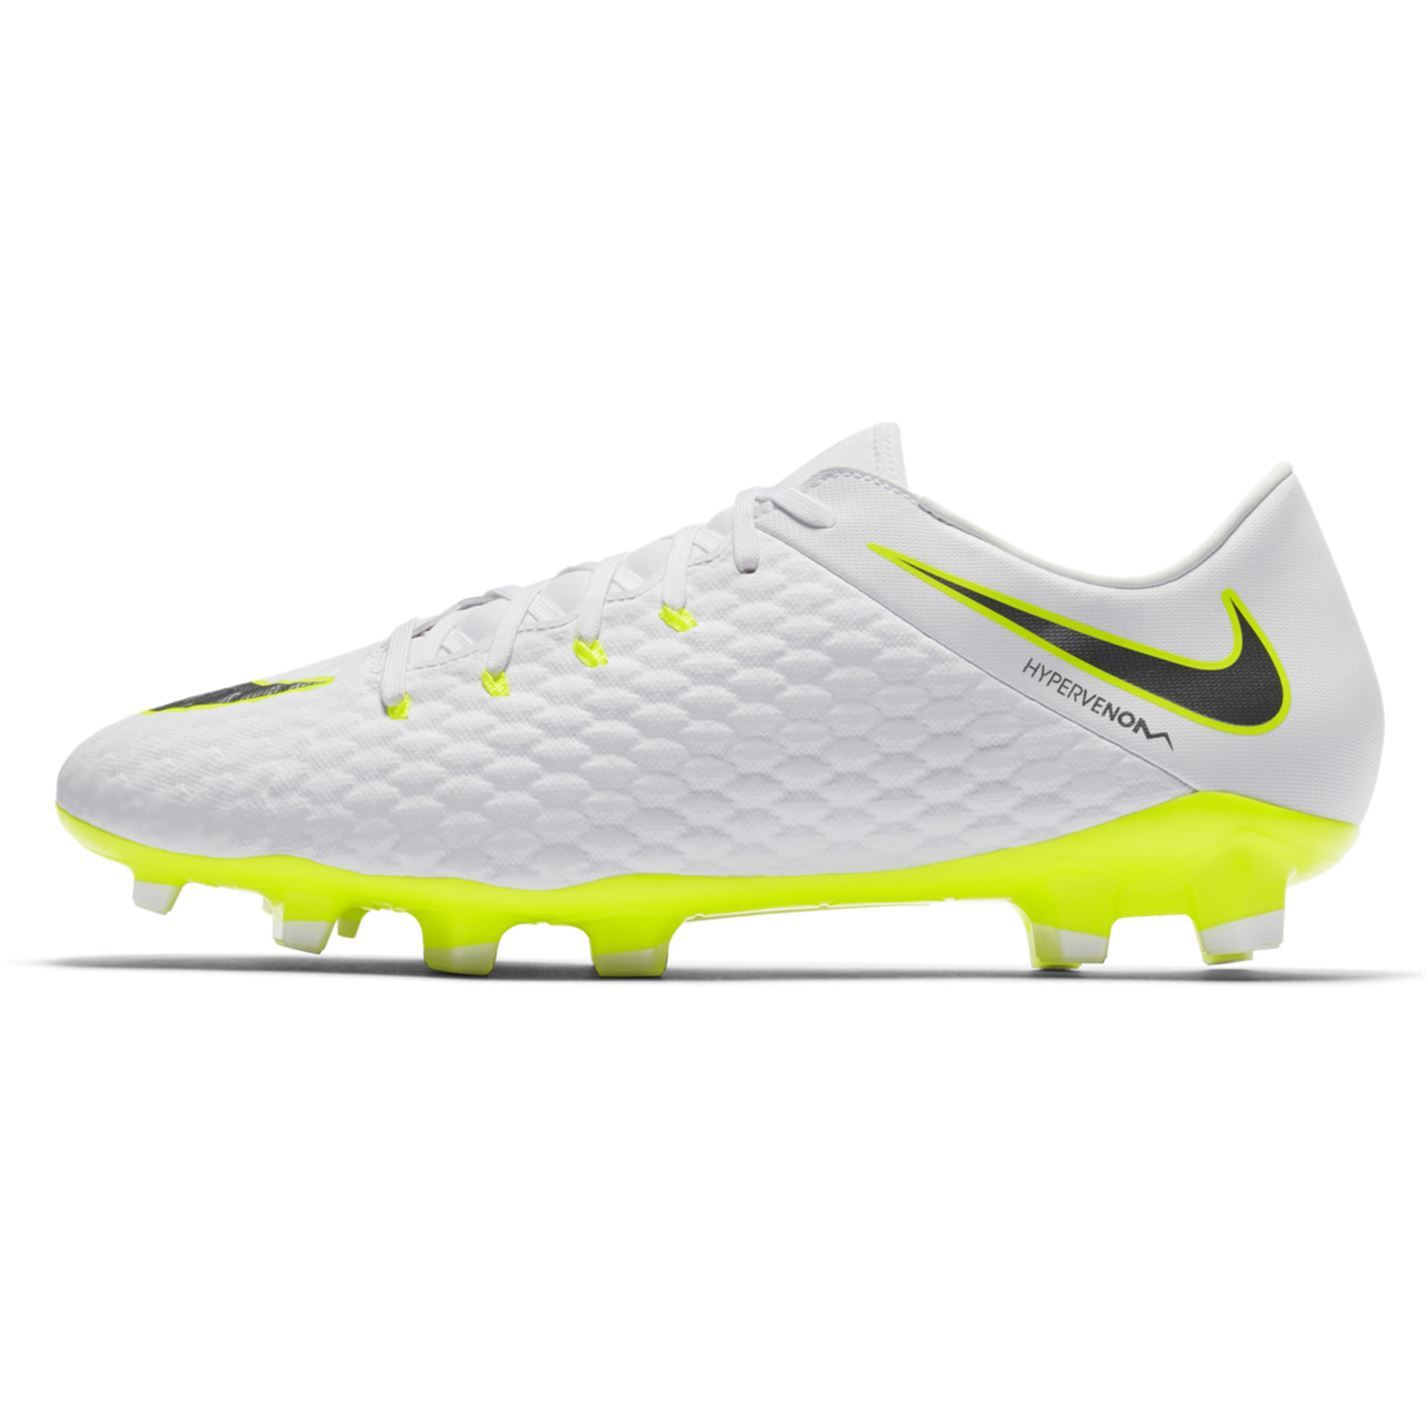 4263678f8889d Nike Hypervenom Phantom 3 Academy FG Football Boots Mens White Soccer Cleats